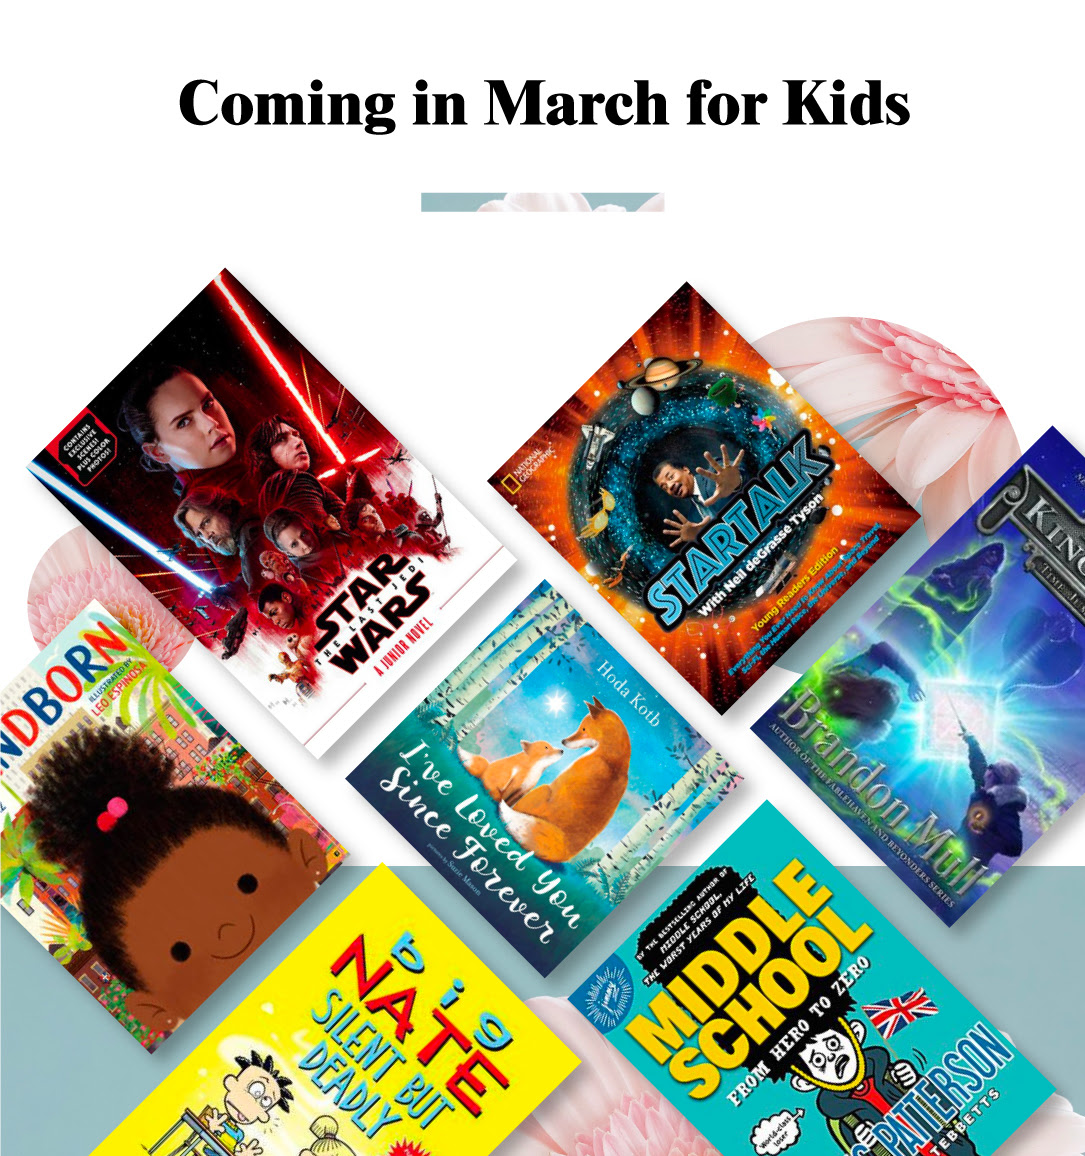 Coming in March for Kids